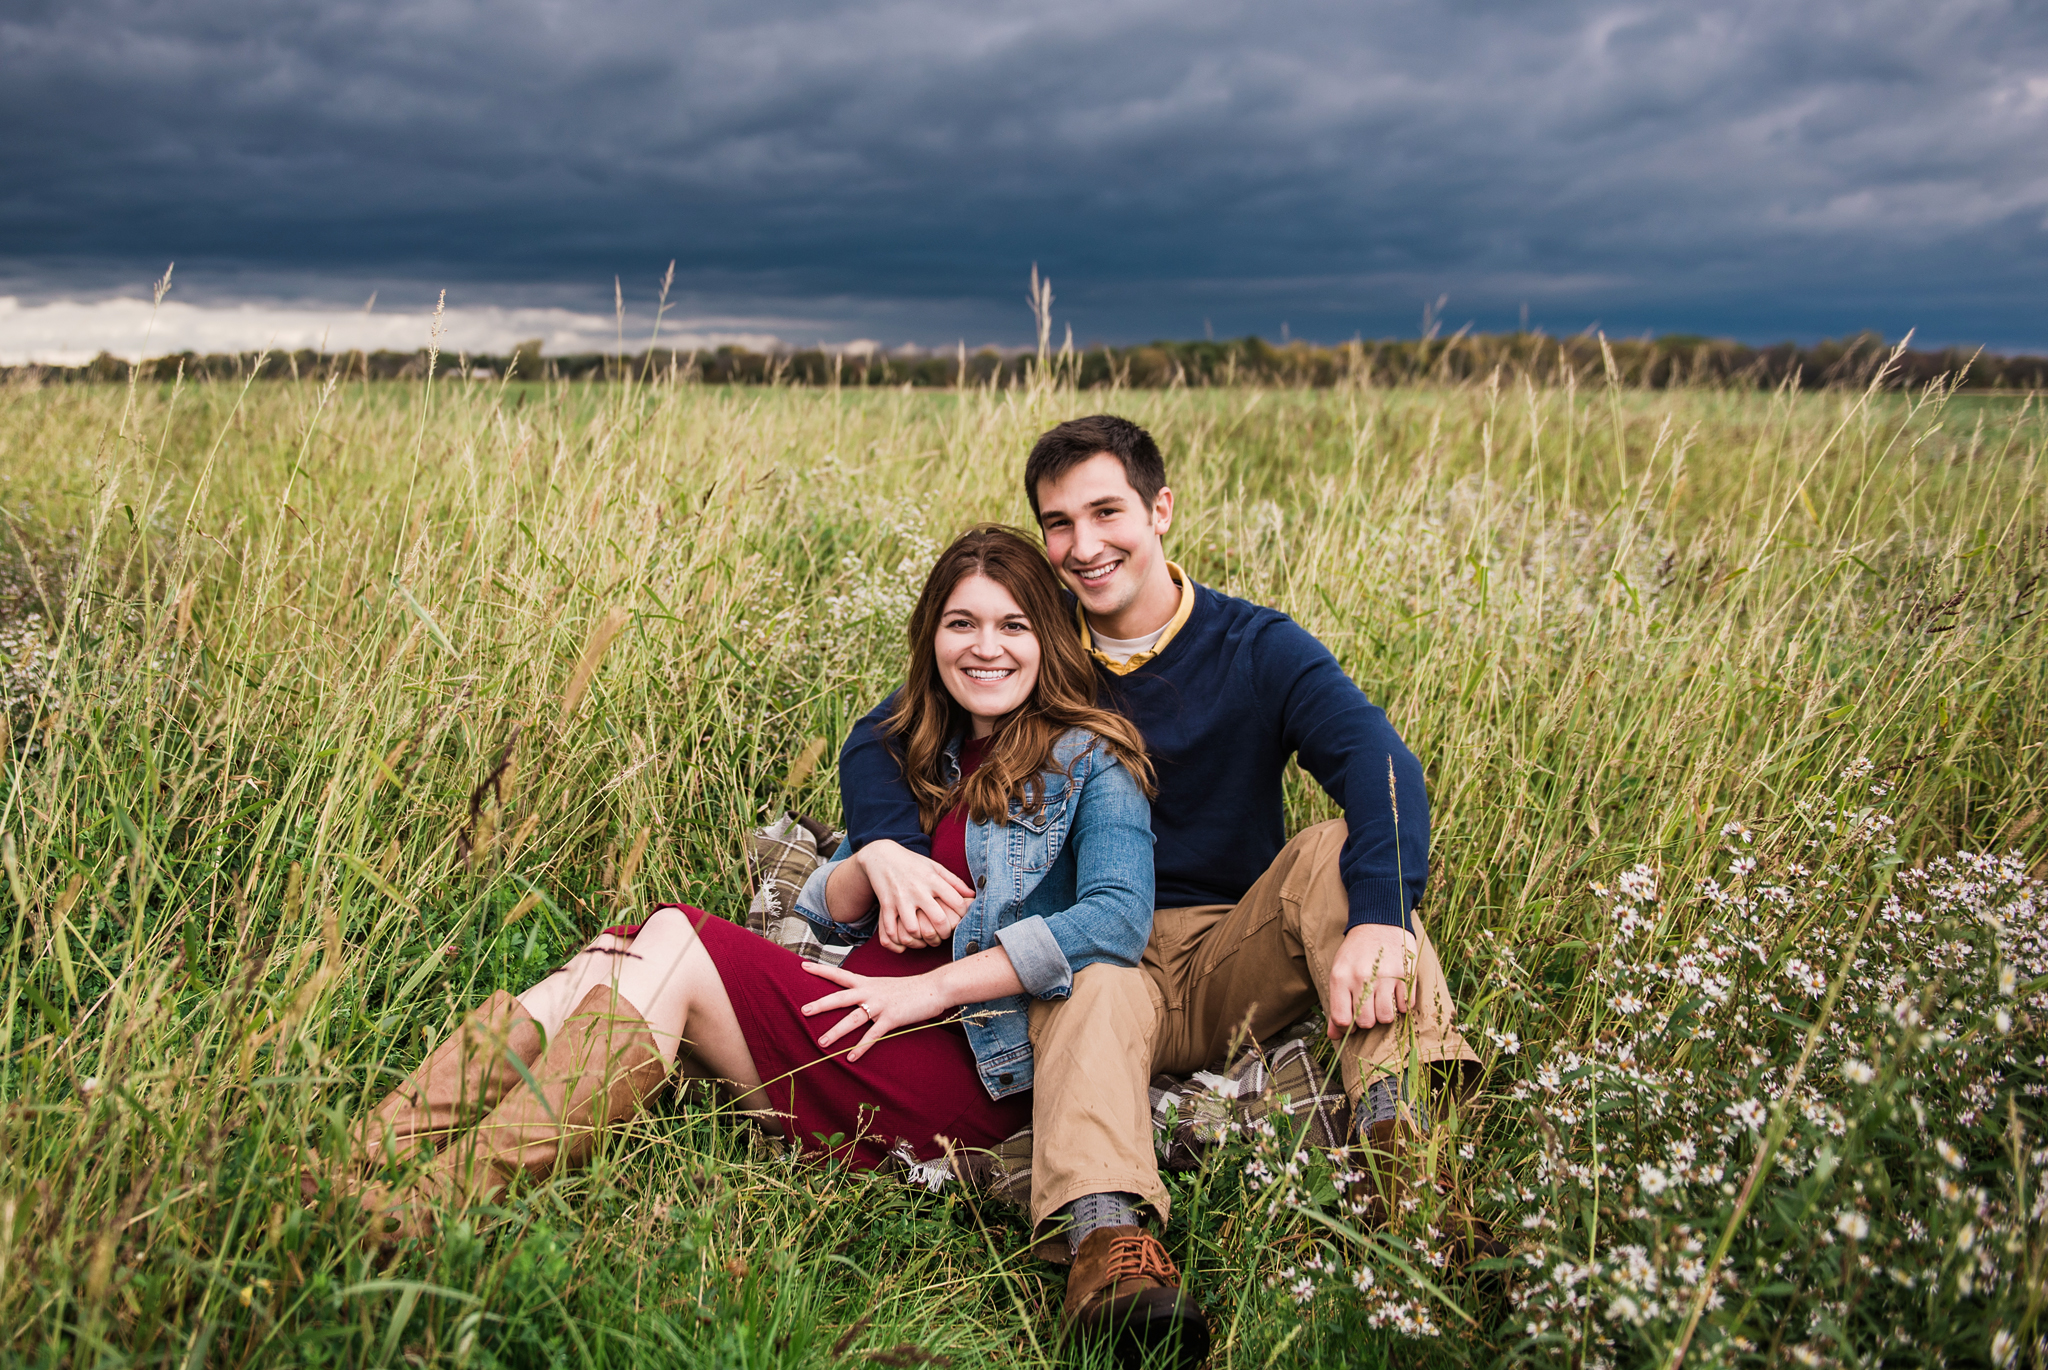 Becker_Farms_Buffalo_Engagement_Session_JILL_STUDIO_Rochester_NY_Photographer_DSC_4785.jpg